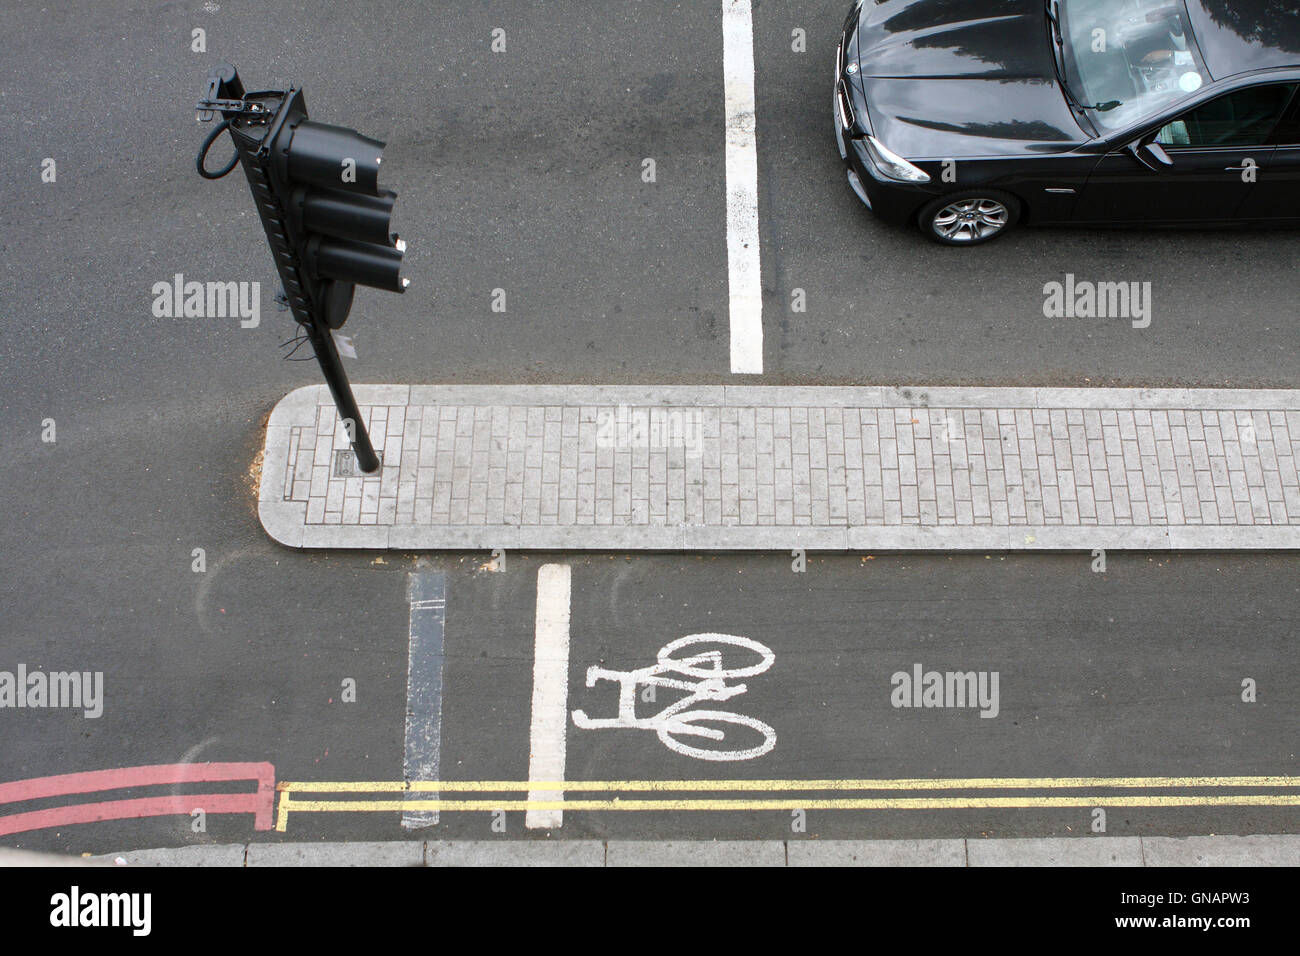 A vehicle waiting at a set of traffic lights next to an empty cycle lane in London, England. Stock Photo